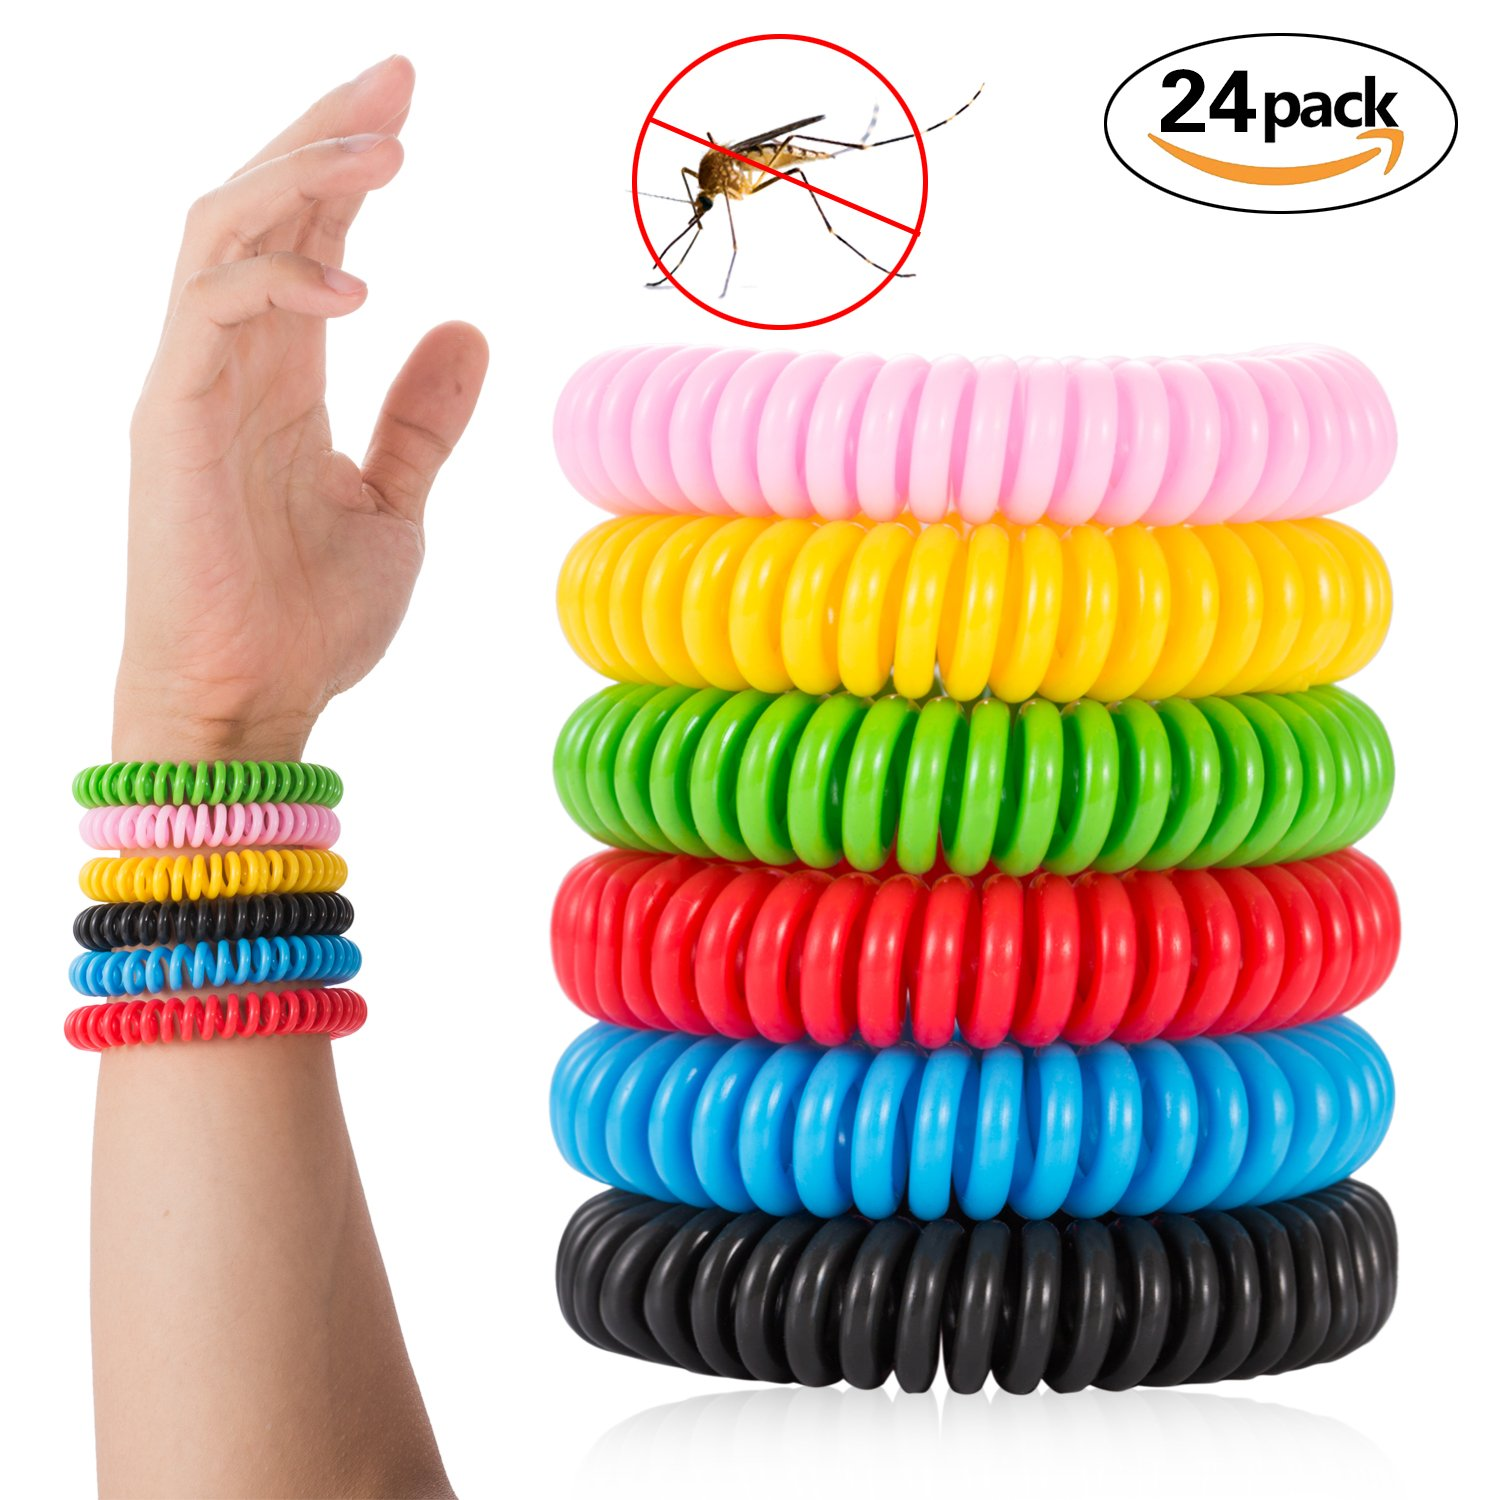 Wilvhome Mosquito Repellent Bracelet For Kids, Adults & Pets - Travel Insect Repellent Design For Maximum Protection Against Bugs, Pests, Waterproof - 24 Pack